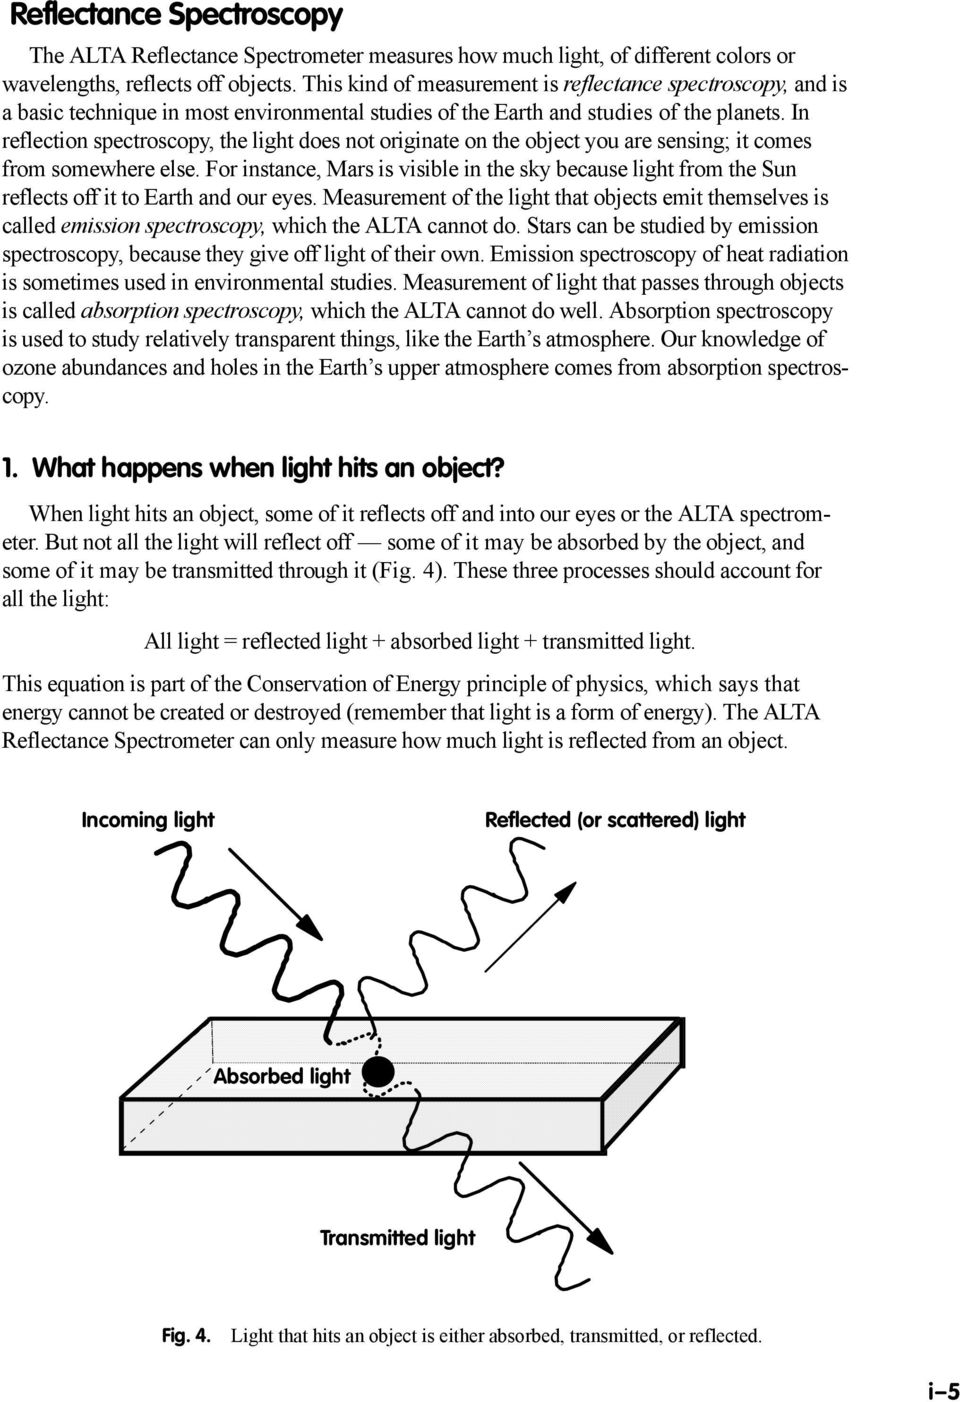 In reflection spectroscopy, the light does not originate on the object you are sensing; it comes from somewhere else.